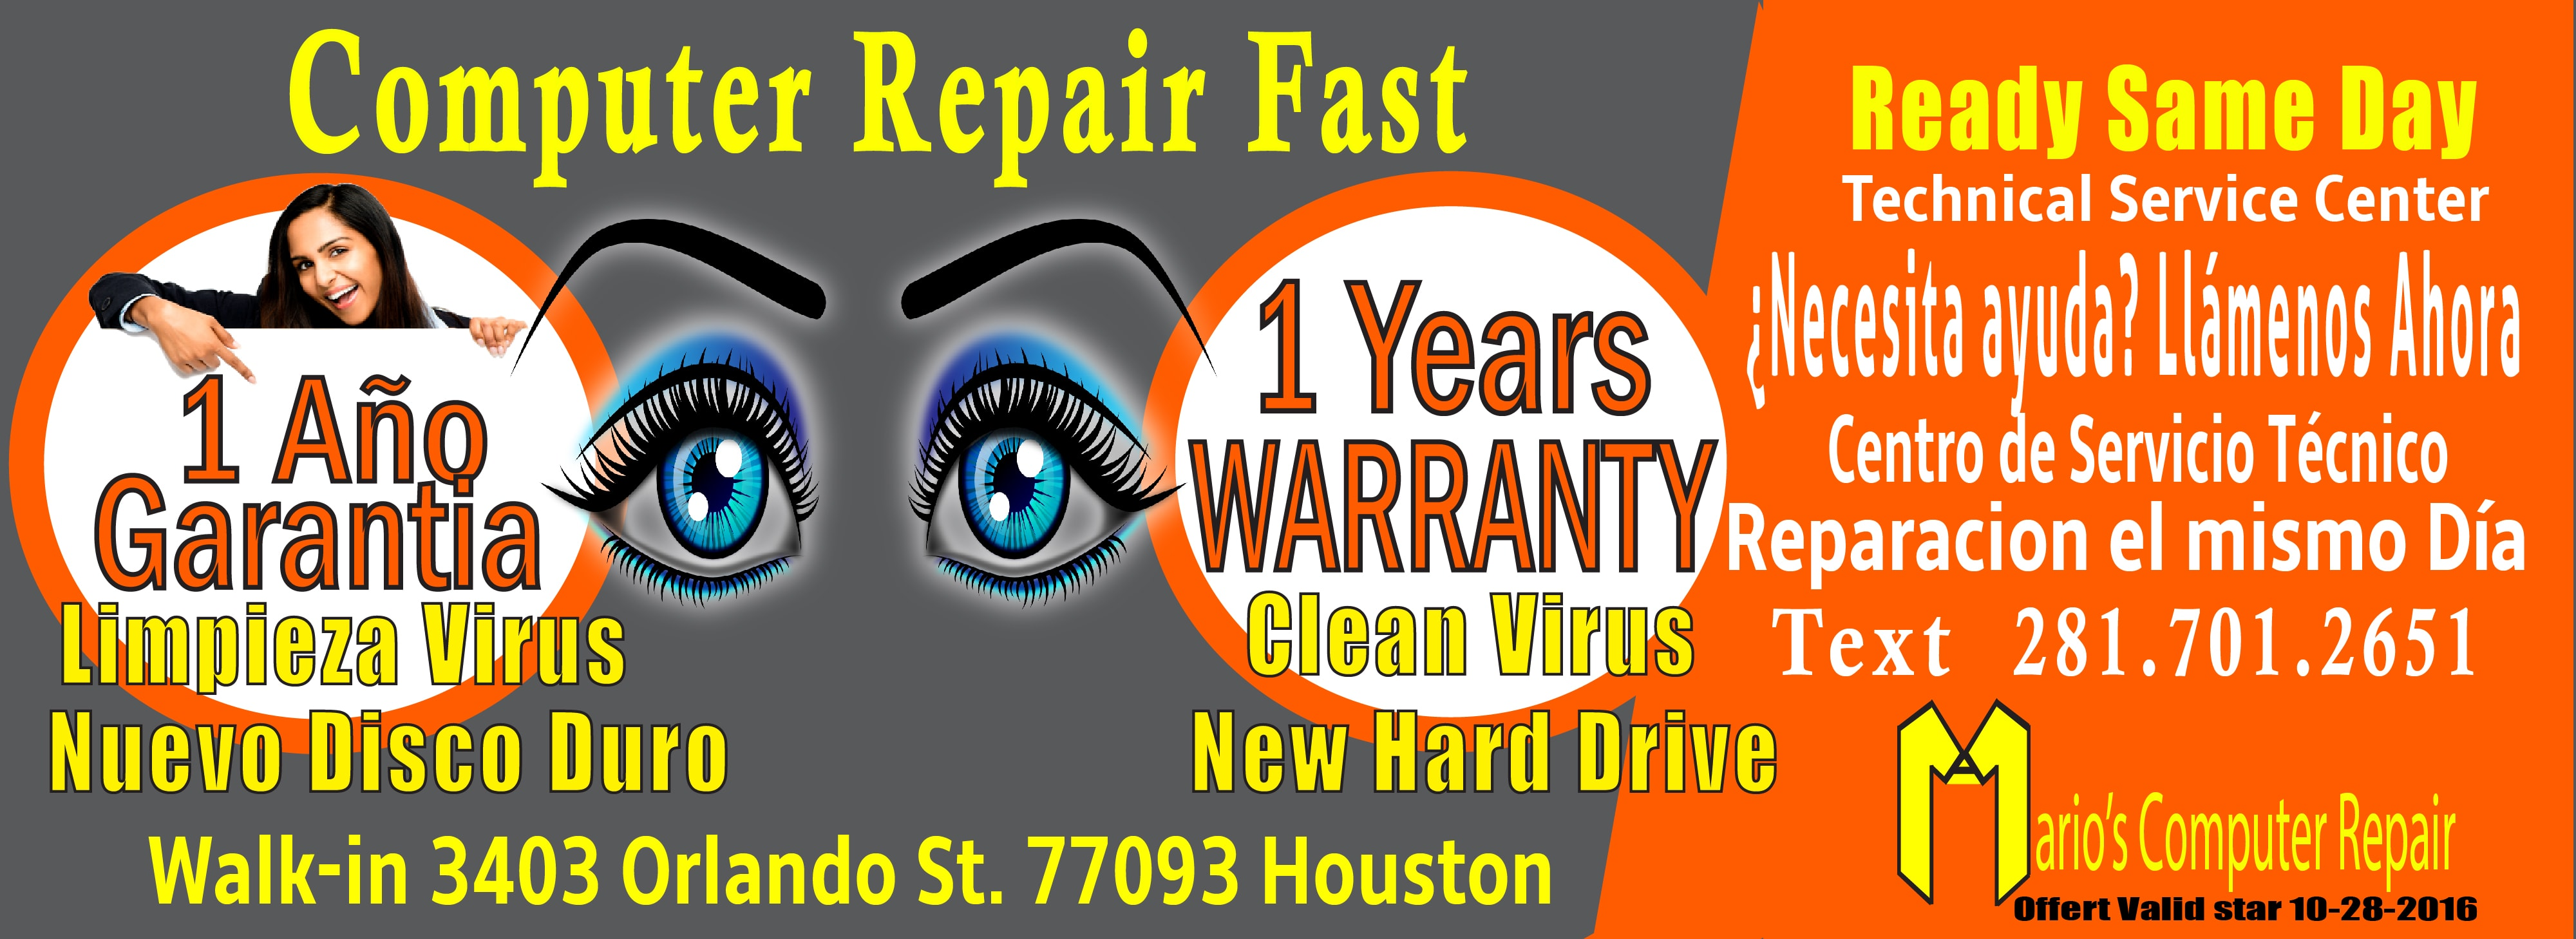 houston computer repair